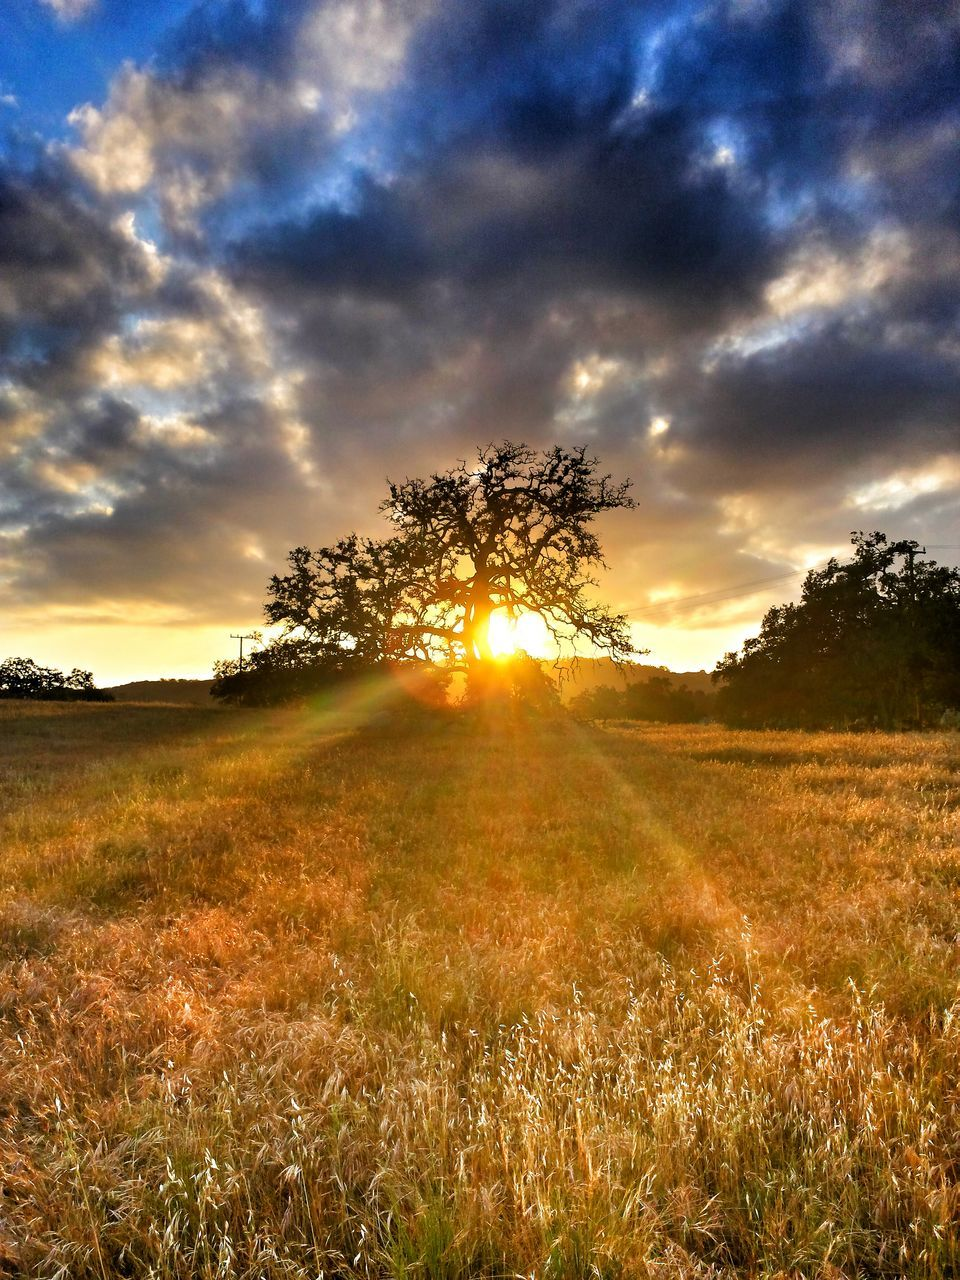 sunset, sunbeam, sun, field, nature, tranquil scene, grass, tree, sky, beauty in nature, tranquility, scenics, sunlight, landscape, majestic, outdoors, cloud - sky, no people, growth, day